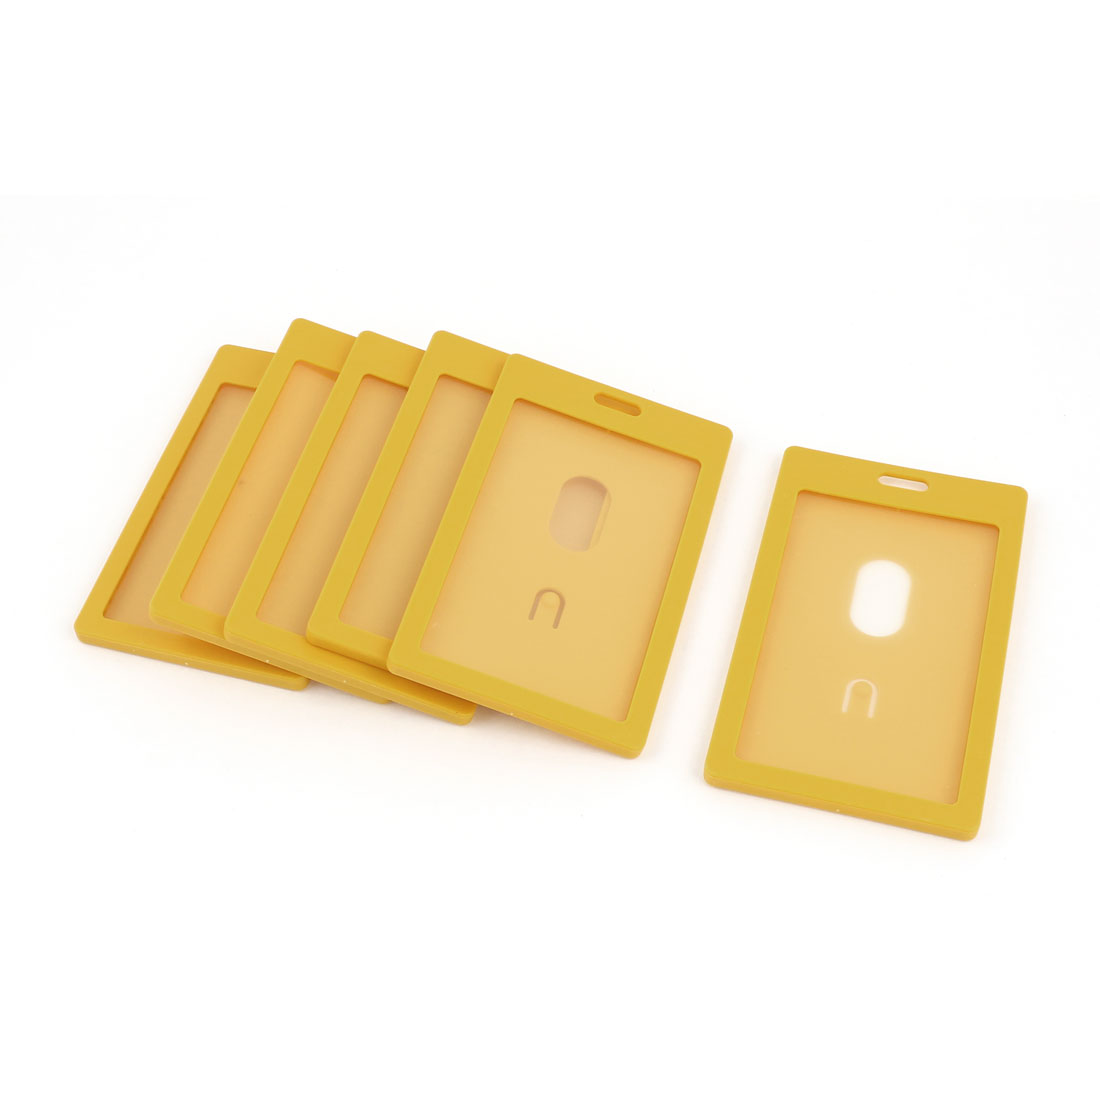 6pcs Orange Plastic Vertical School Work ID Holder Attachment Top 54mm x 90mm